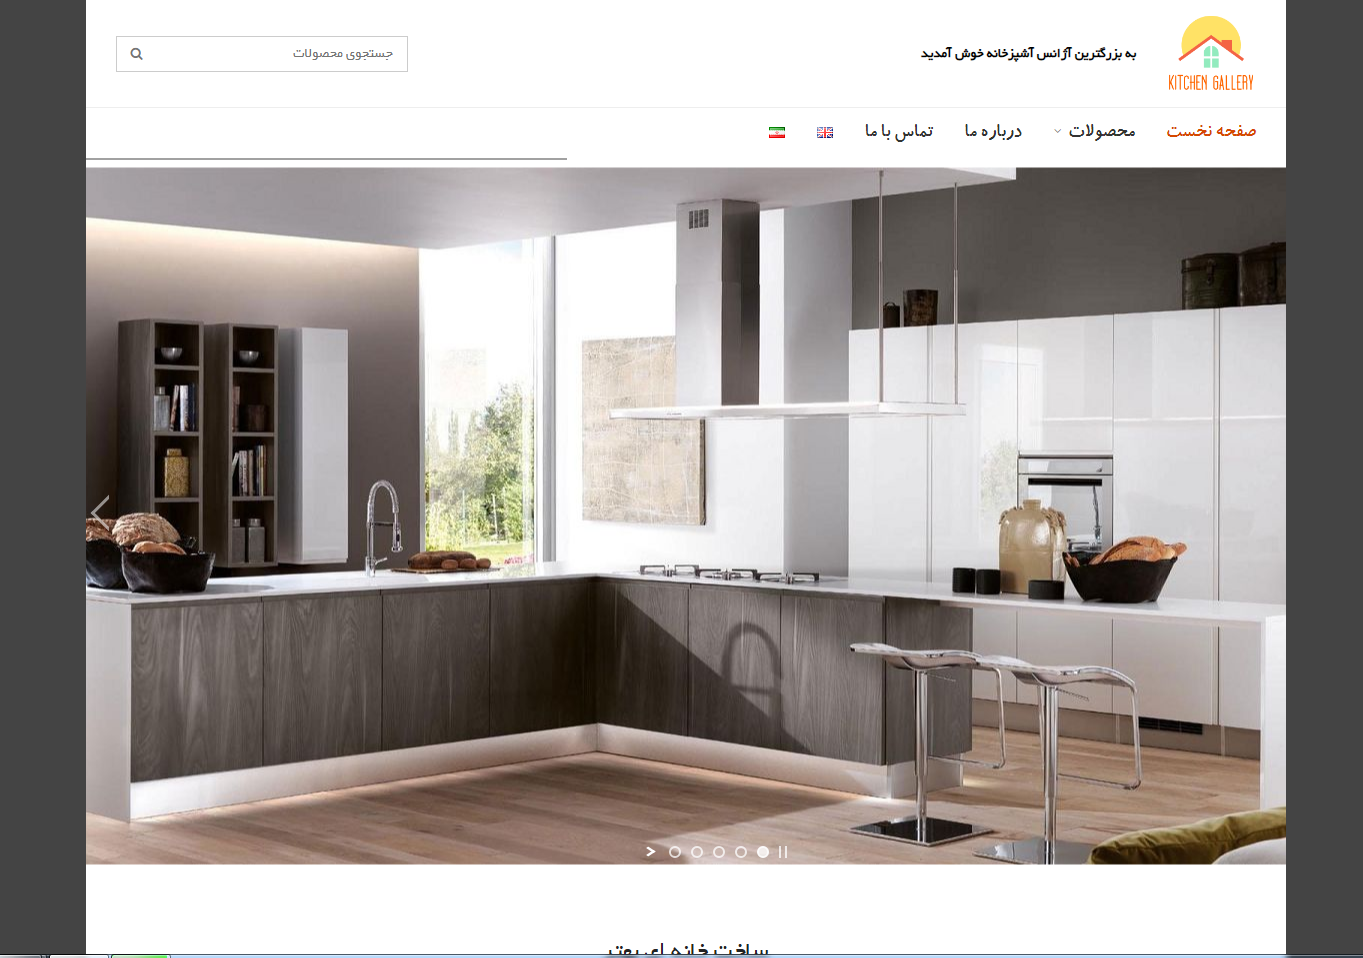 وبسایت kitchen gallery